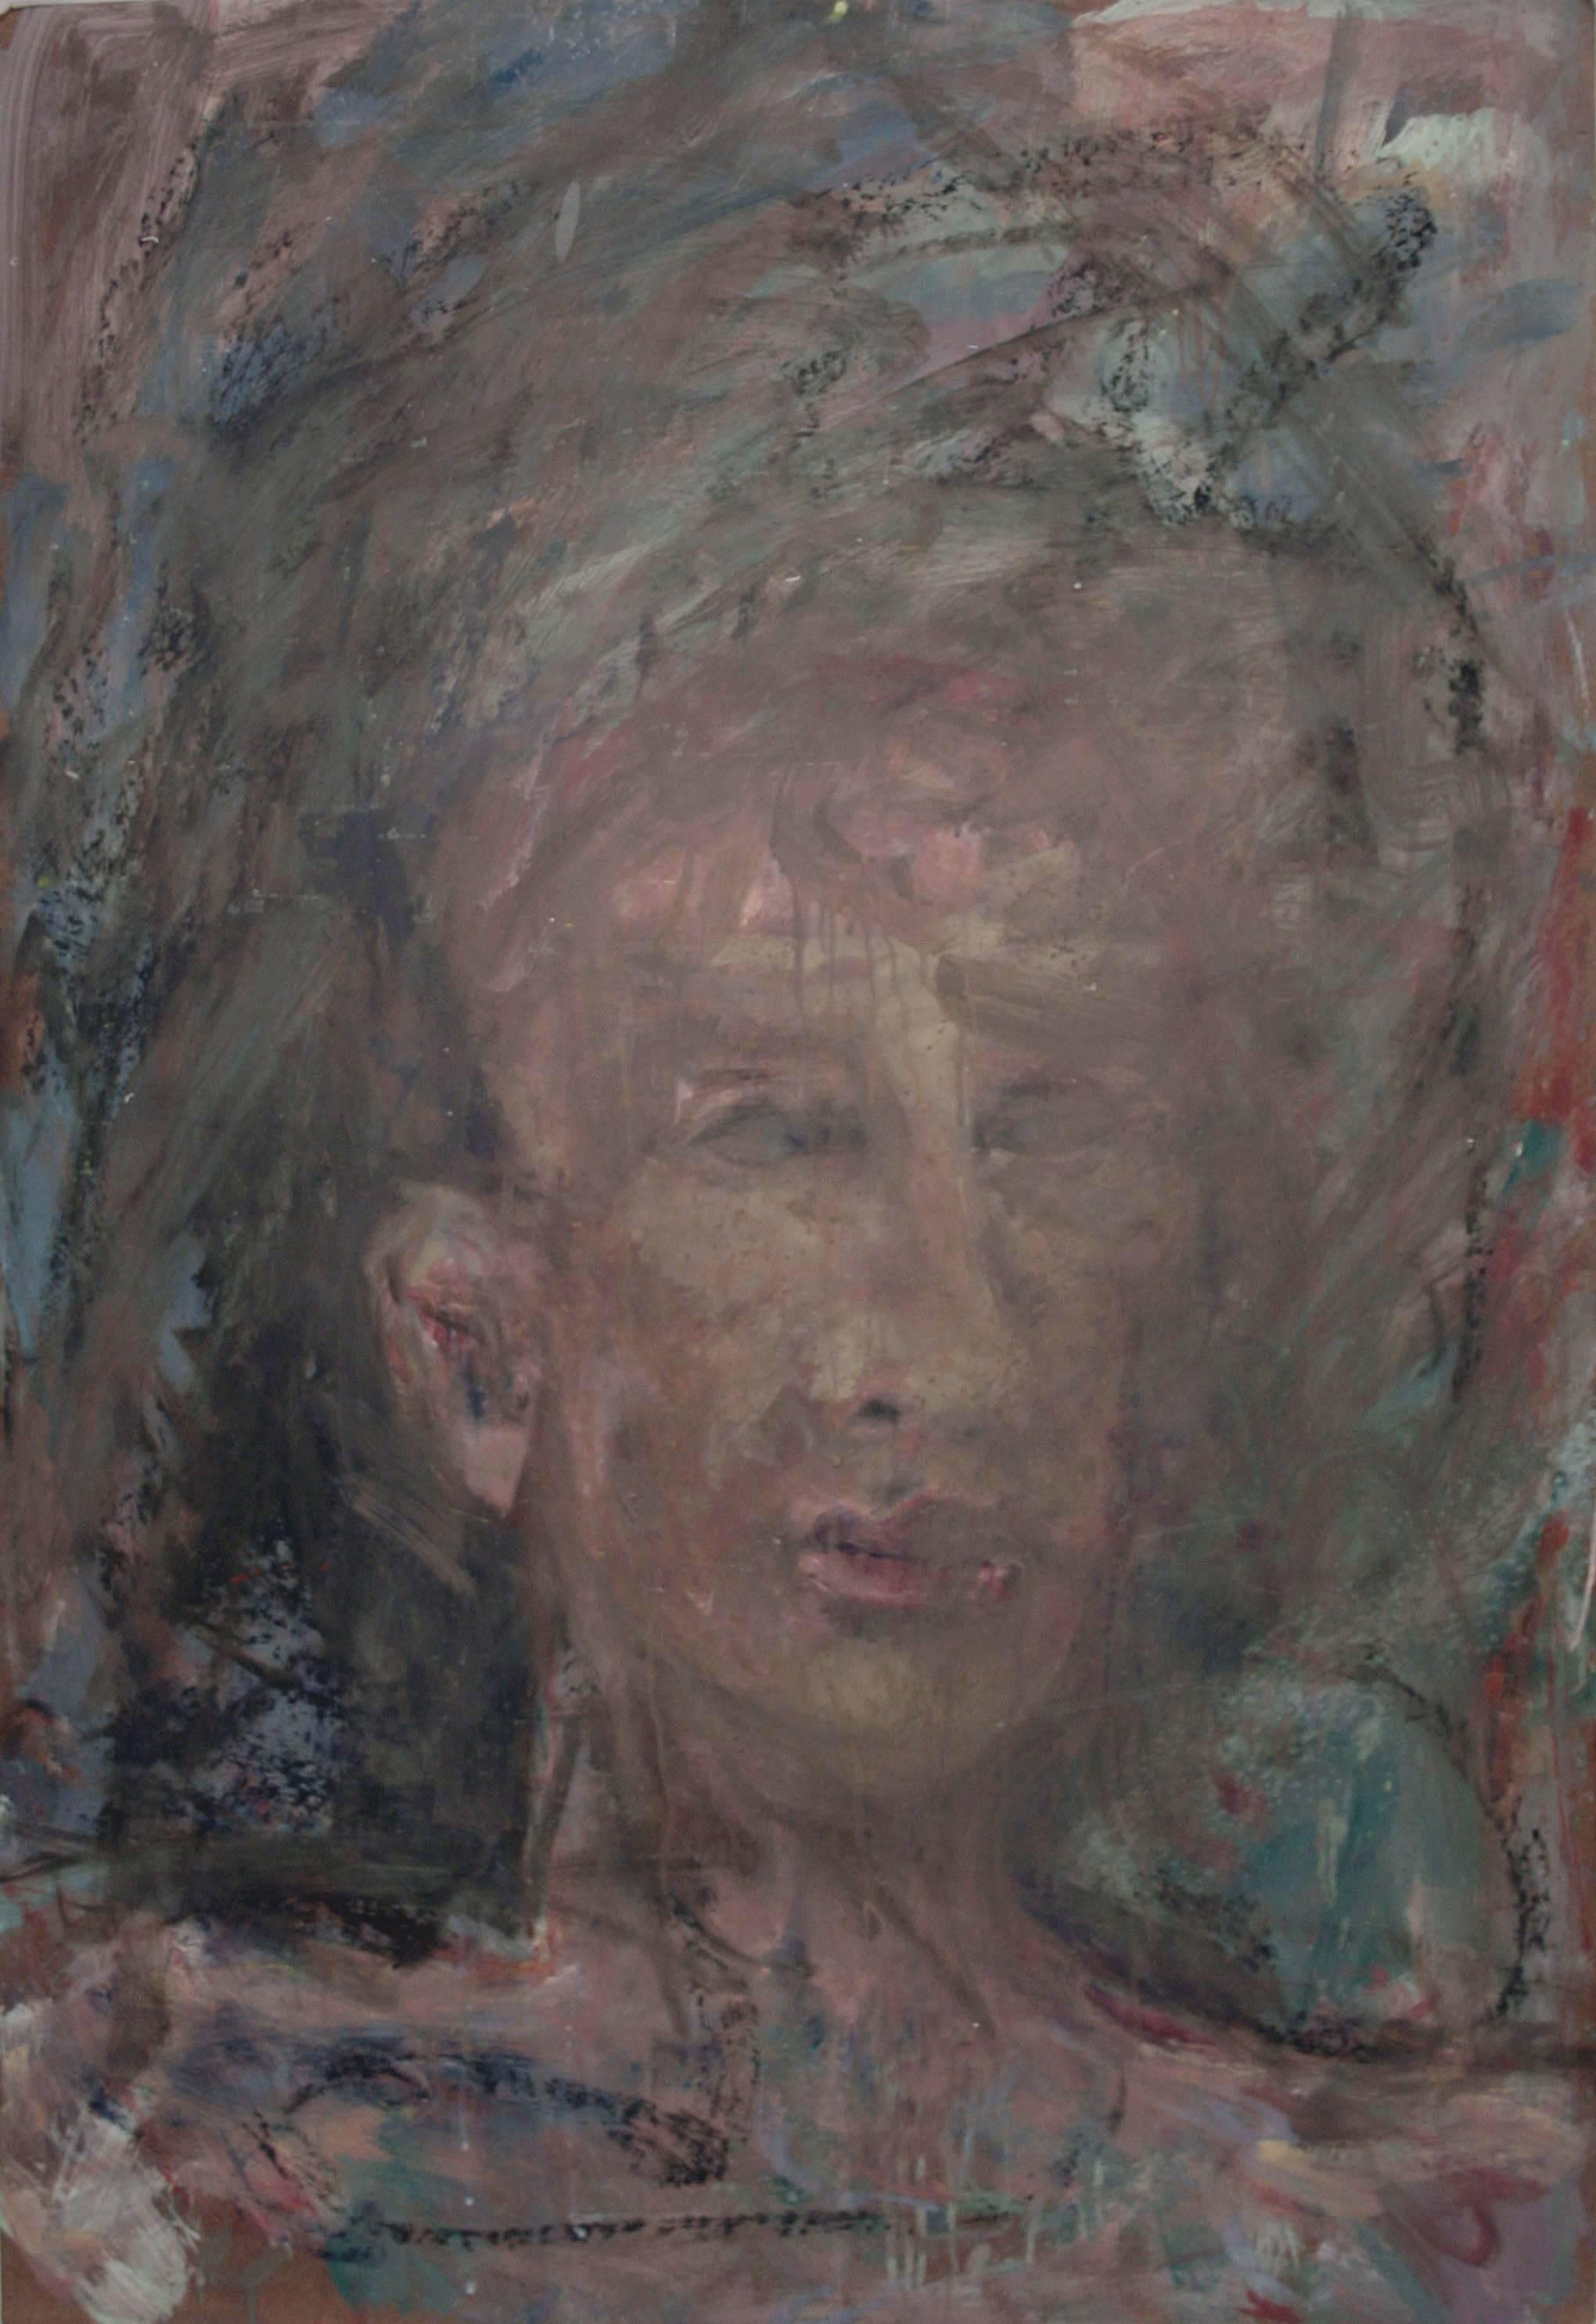 Abstract Expressionist Portrait of a Man